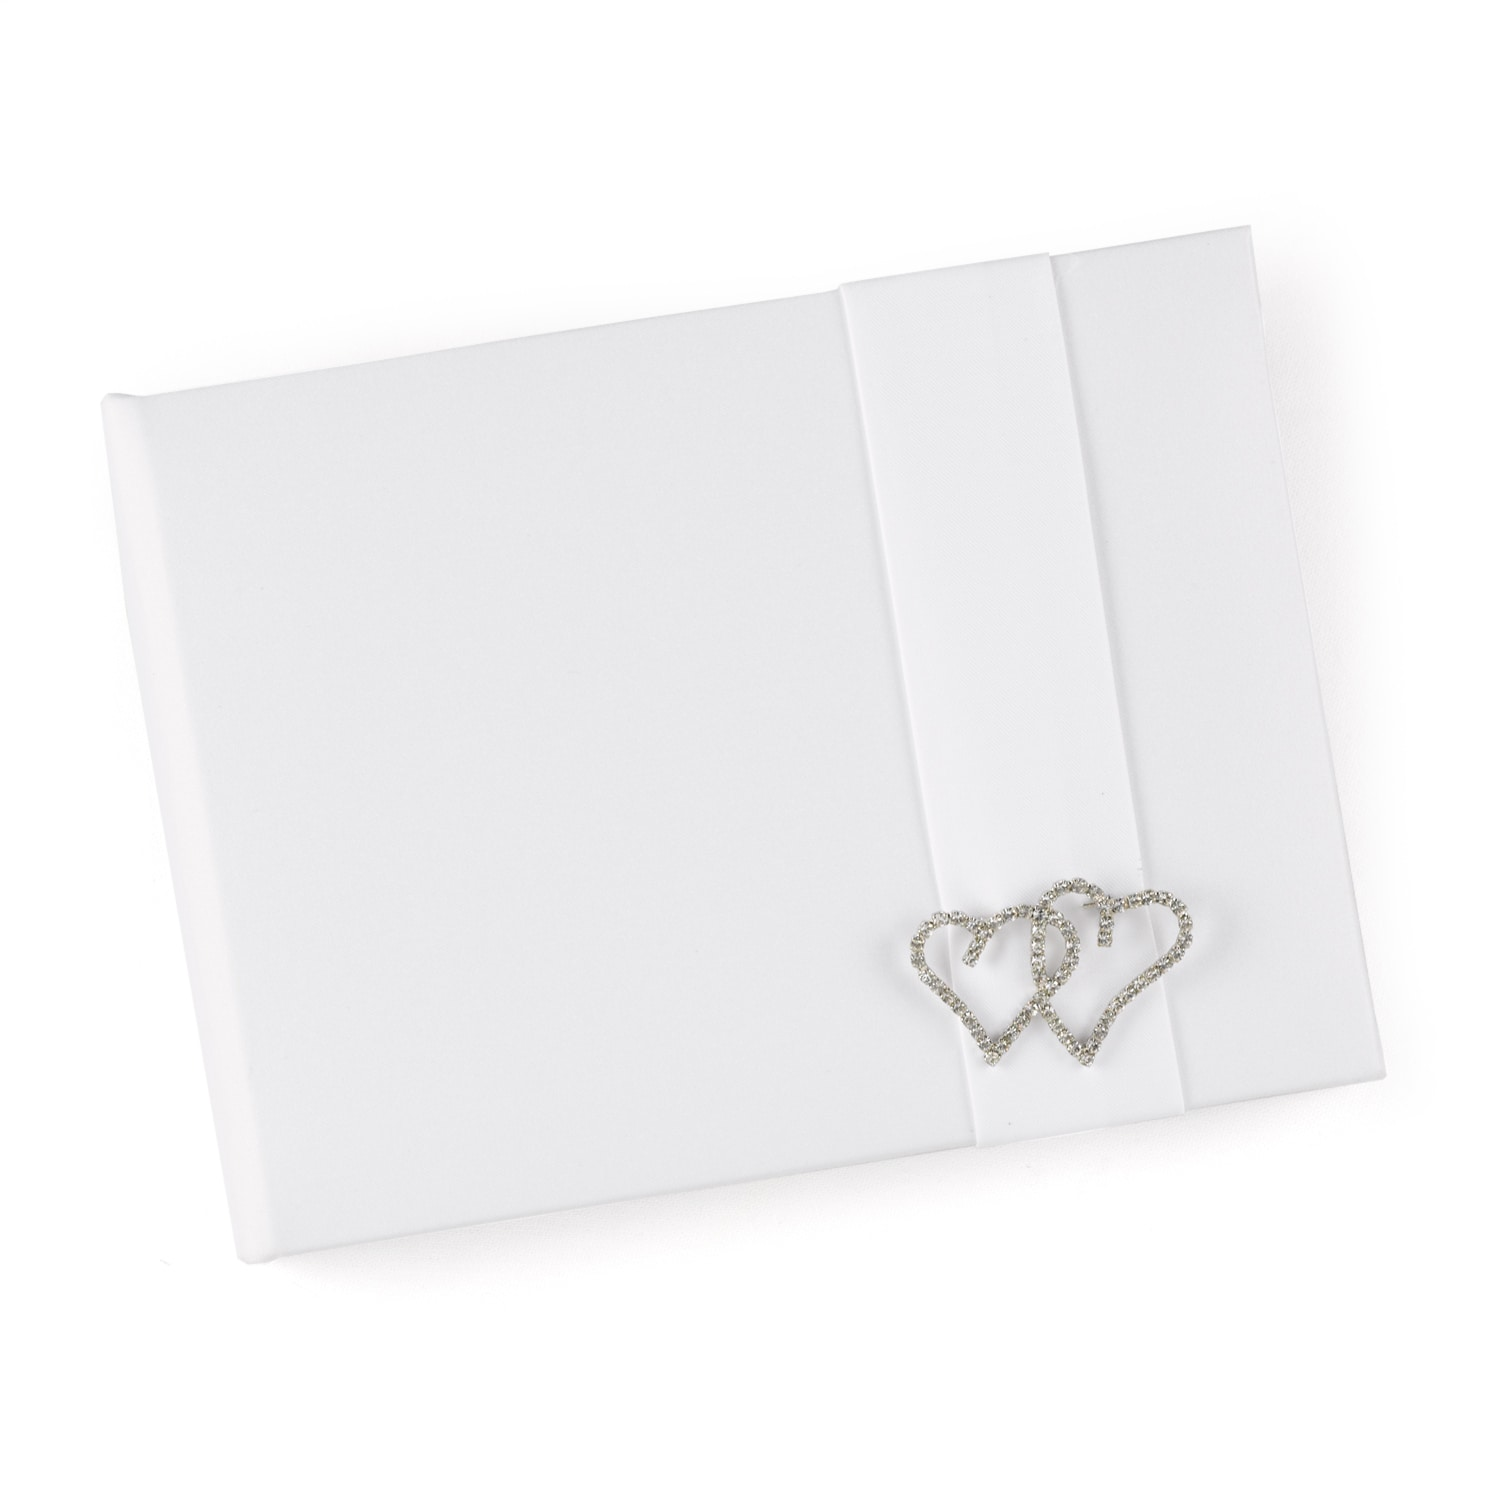 With All My Heart - Guest Book - White